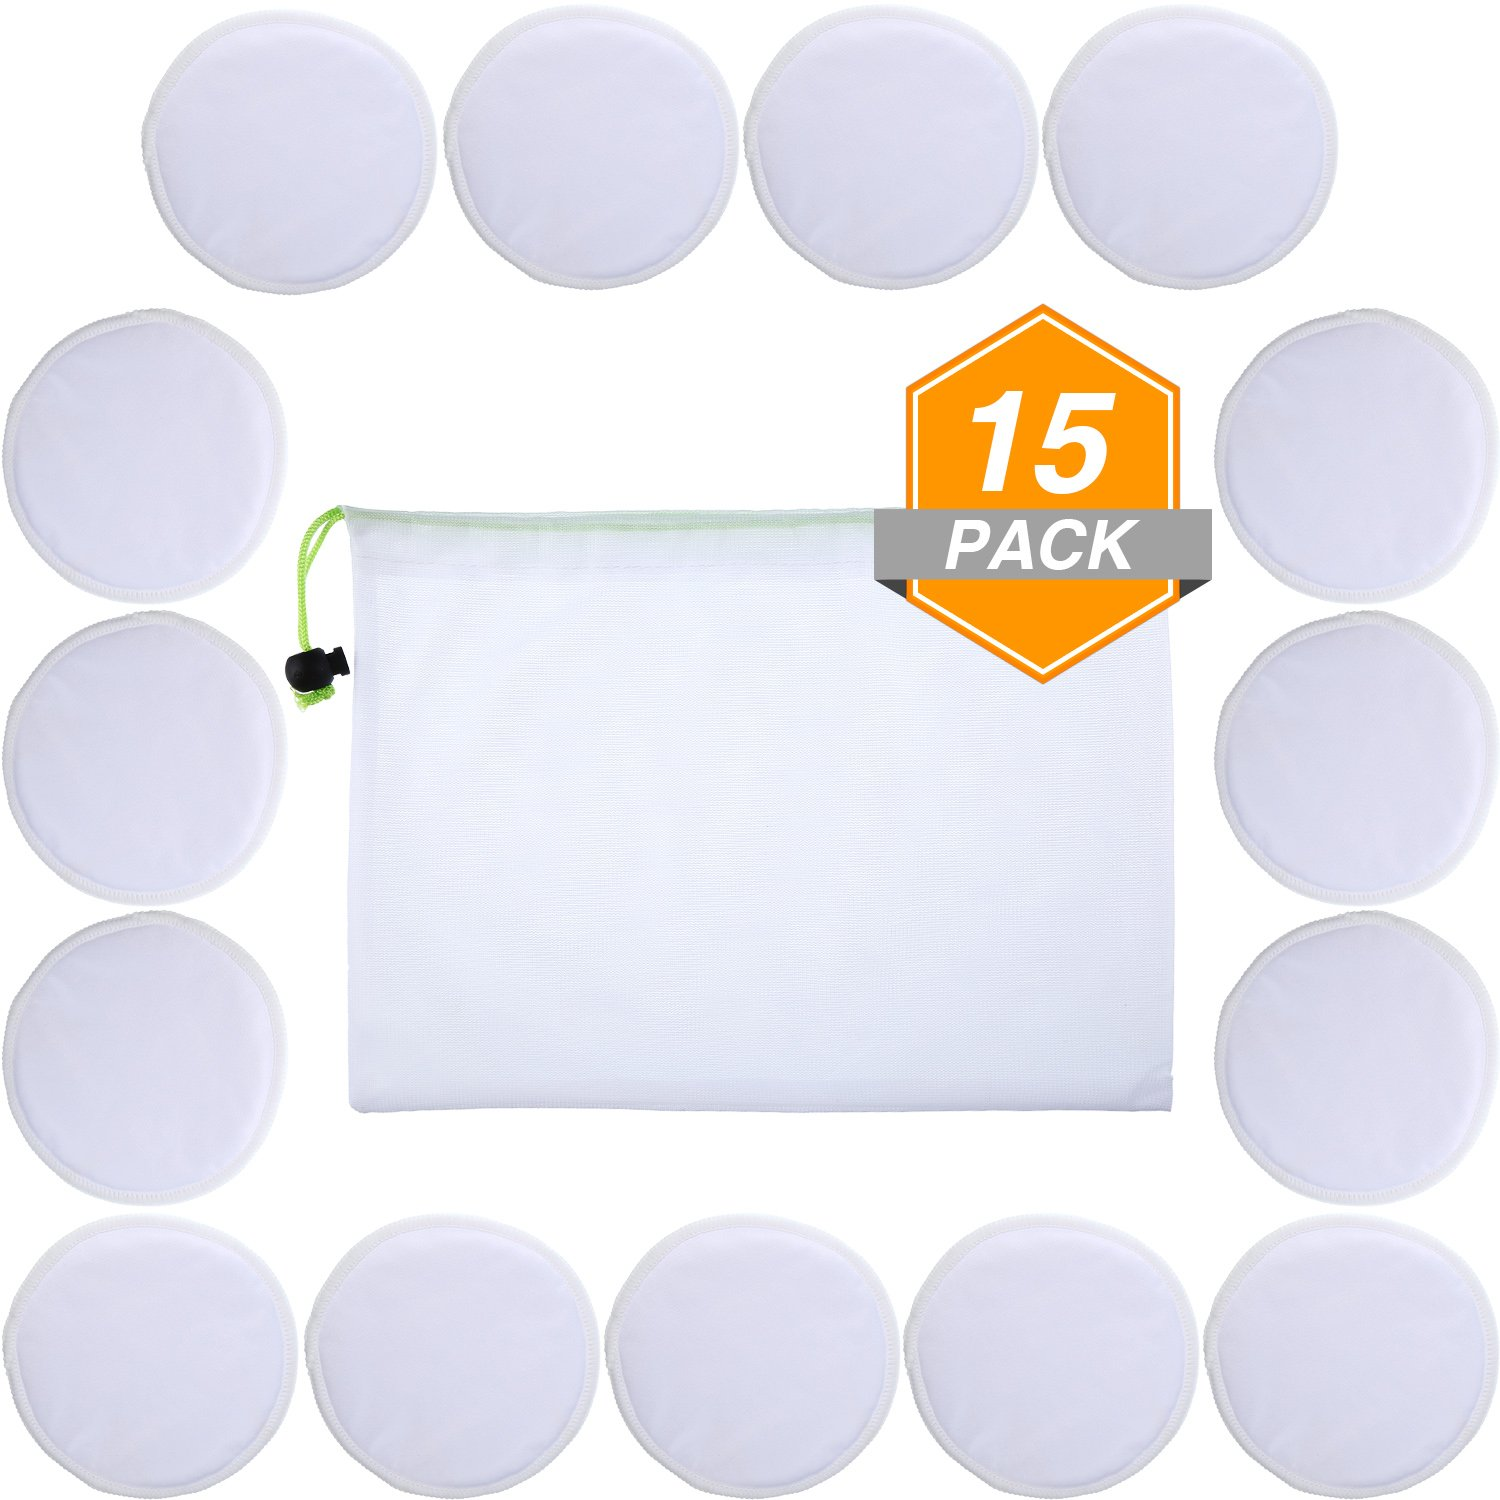 15 Pieces Makeup Remover Pads Soft Face Clean Pads Skin Care Wash Cloth Pads with Mesh Drawstring Bag, White Gejoy